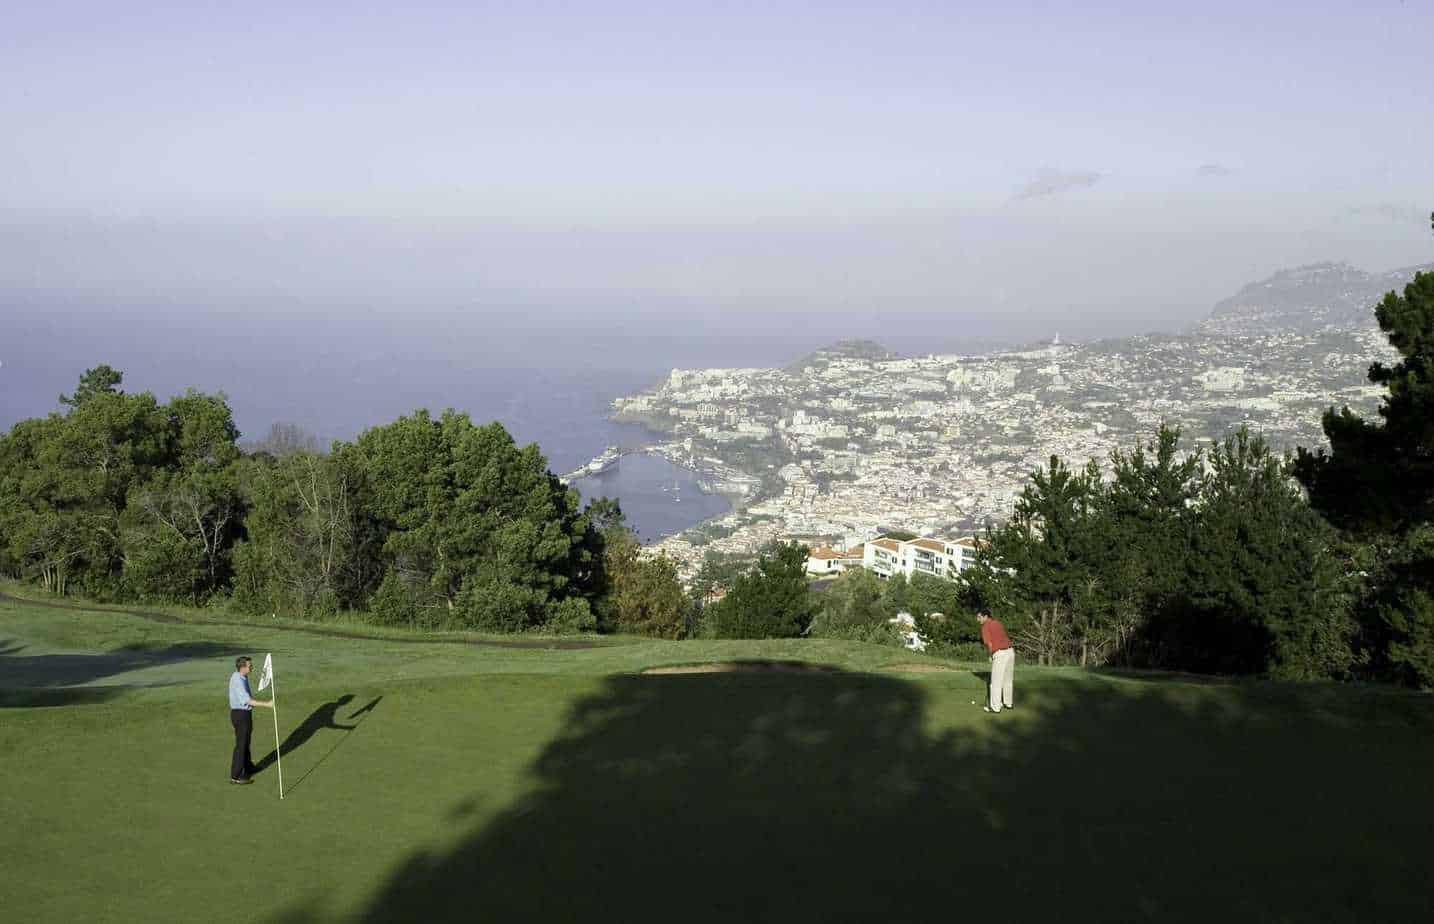 Golf course Palheiro in Funchal